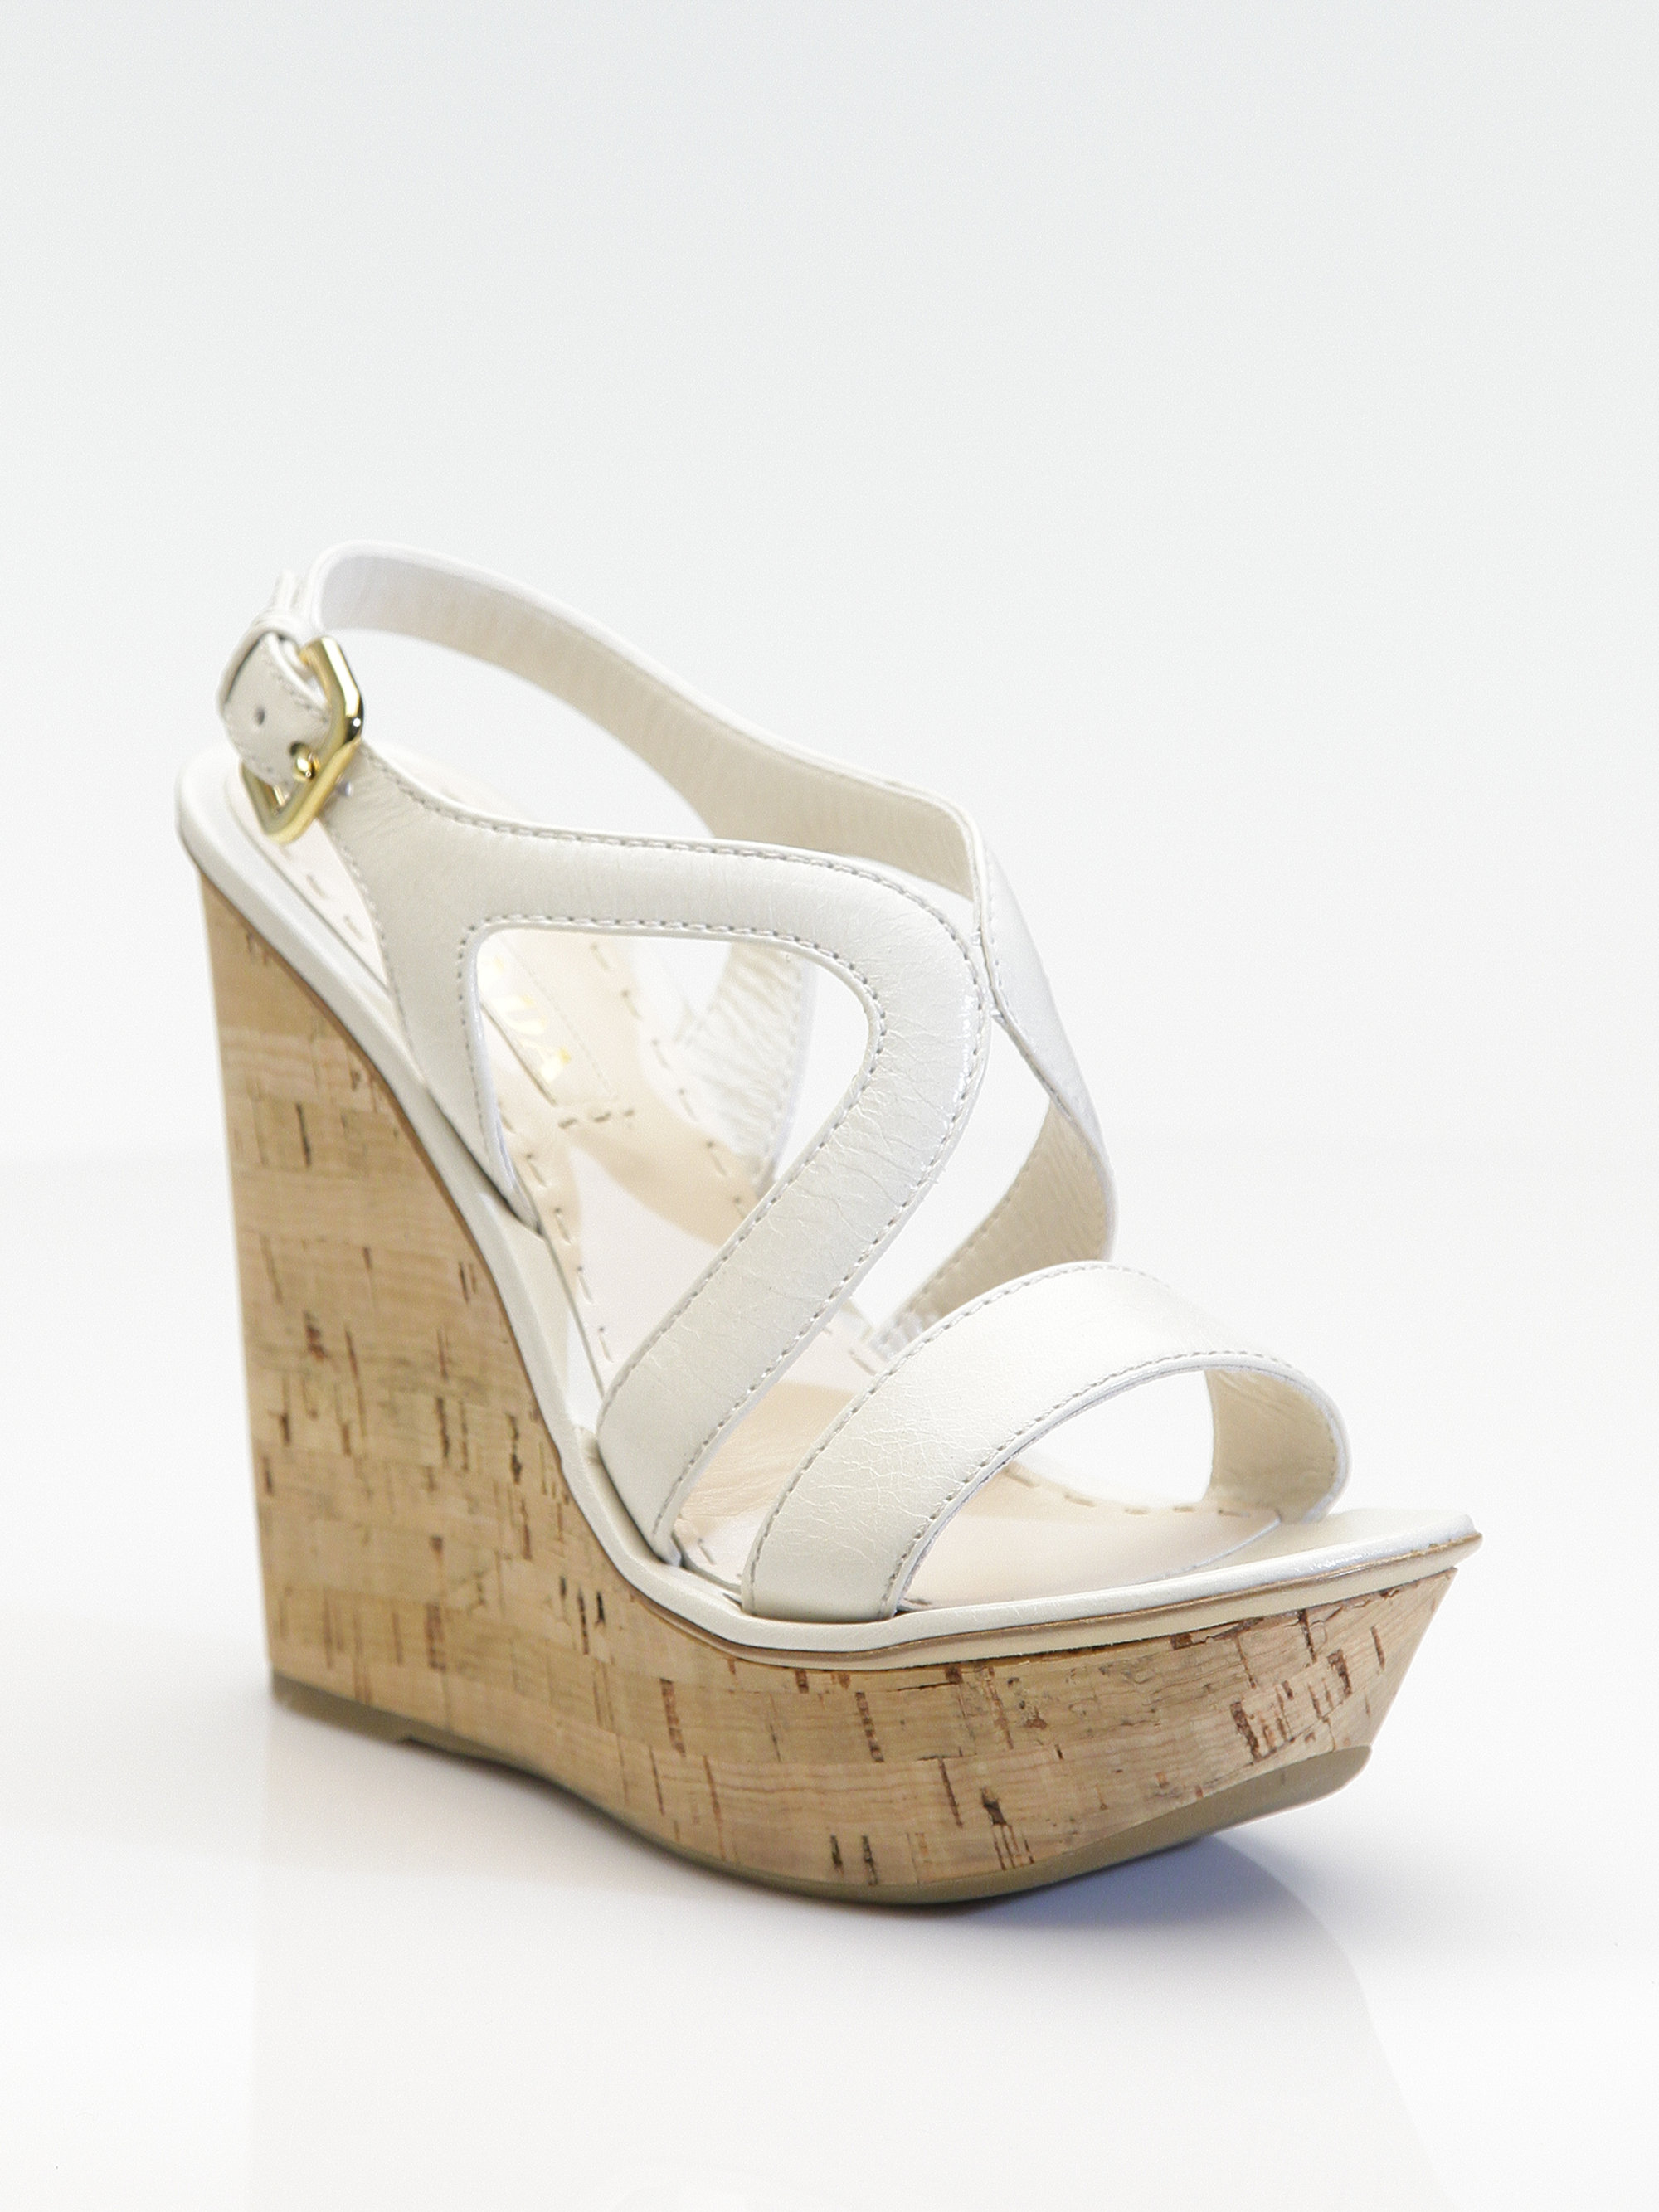 64e6bca47489f Lyst - Prada Cork Wedge Sandals in White Prada Patent Leather ...